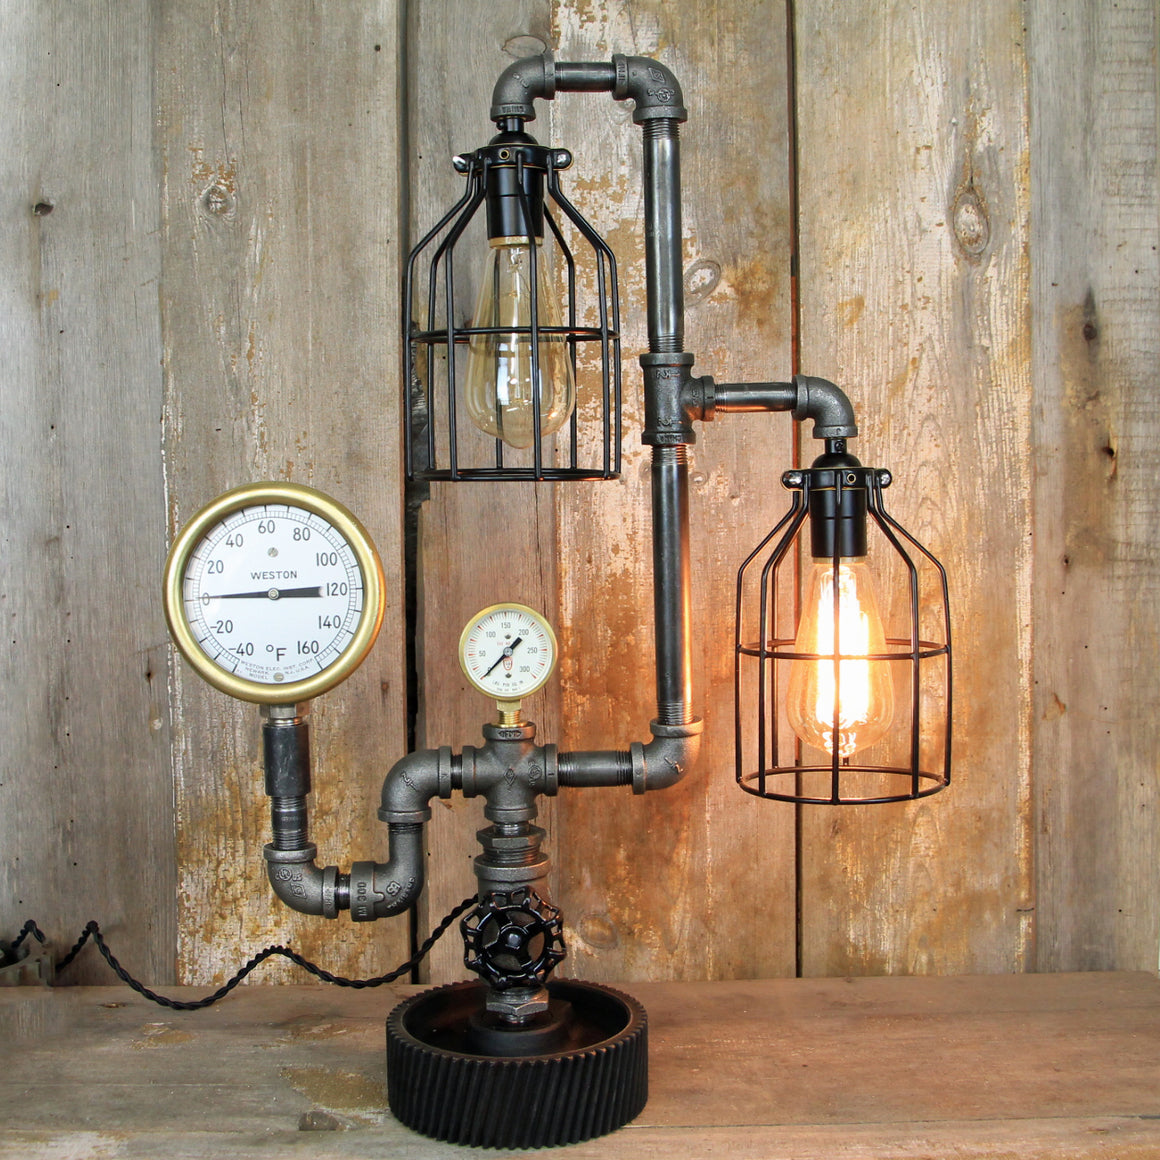 Steampunk Industrial Lamp with Two Pressure Gauges Two Edison Lights #299 - The Lighting Works